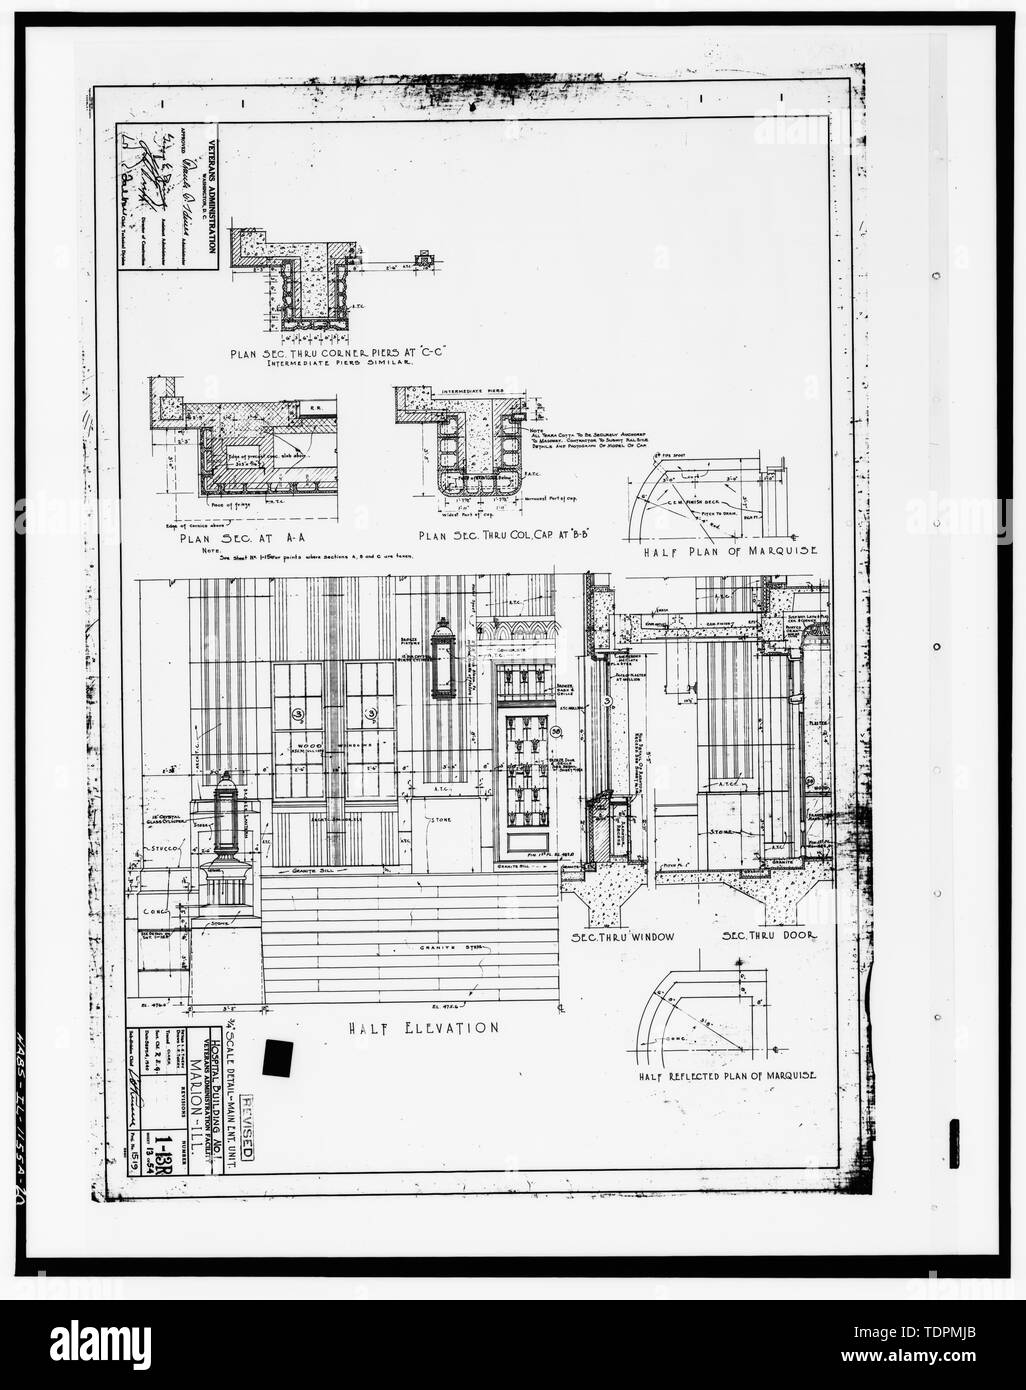 Photograph of a line drawing in the possession of the Engineer's Office of the Marion, IL Veterans Administration Medical Center. 3-4' SCALE DETAIL - MAIN ENT. UNIT (PLAN SECTIONS, HALF ELEVATION, SECTIONS THROUGH WINDOW and DOOR. HALF PLAN and HALF REFLECTED PLAN OF MARQUISE); DRAWING 1-13R, DATED SEPTEMBER 4, 1940. - Veterans Administration Medical Center, Building No. 1, Old State Route 13 West, Marion, Williamson County, IL; U.S. Department of Veterans Affairs; Ryan, Robert A, historian; Dennett, Muesig, Ryan and Associates, Ltd., historian; Ryan, Robert A, photographer; Harms, Bruce A, ph - Stock Image